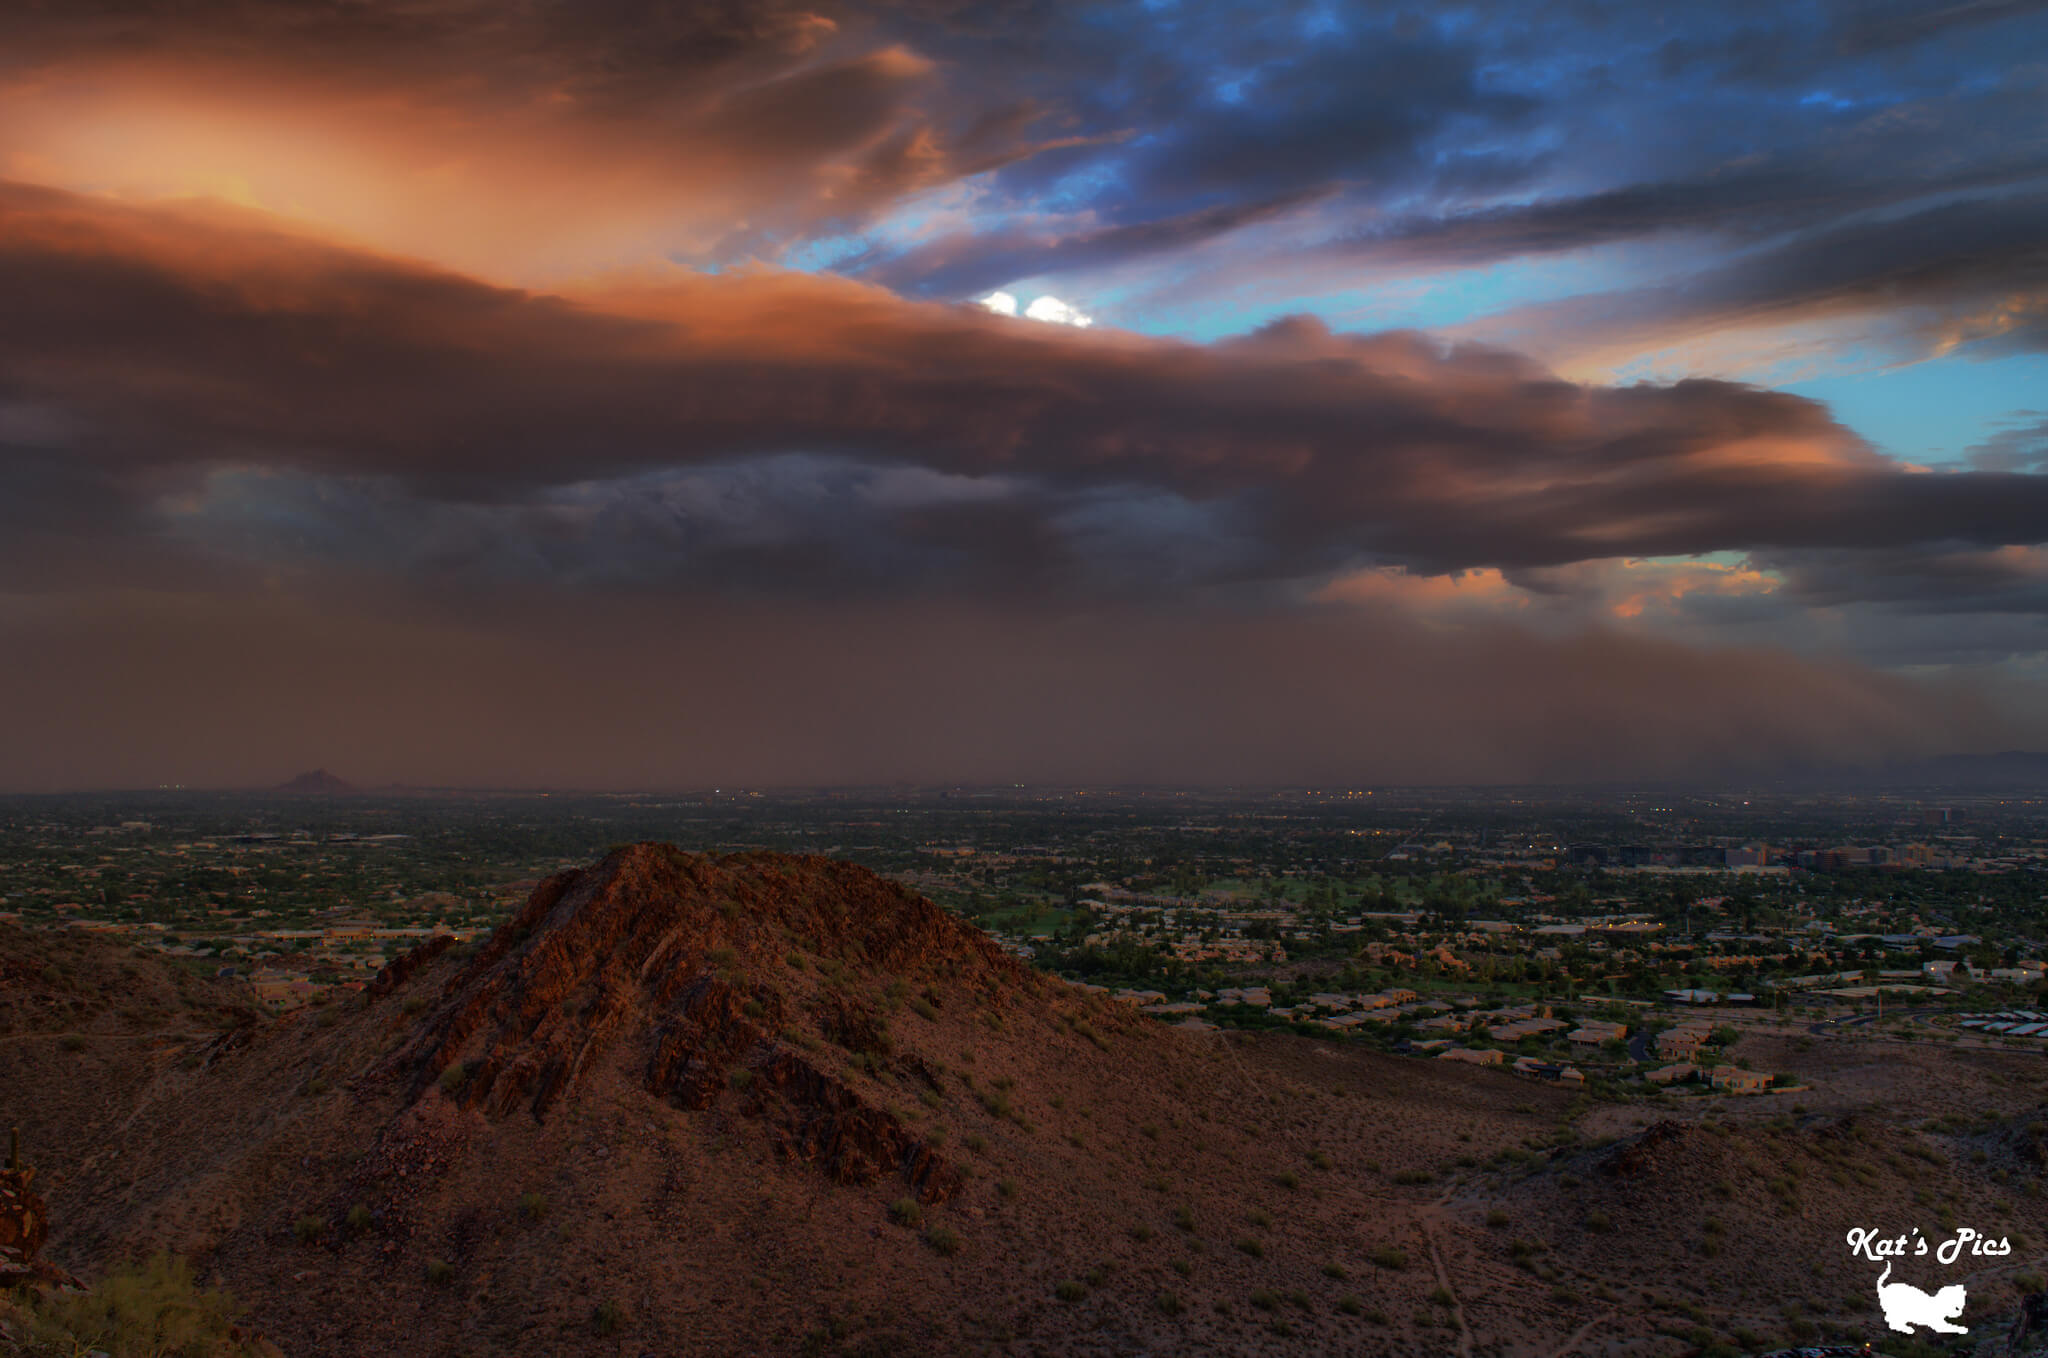 A dust storm brewing above South Mountain in Phoenix. Arizona. Flickr User Katheryn Navas